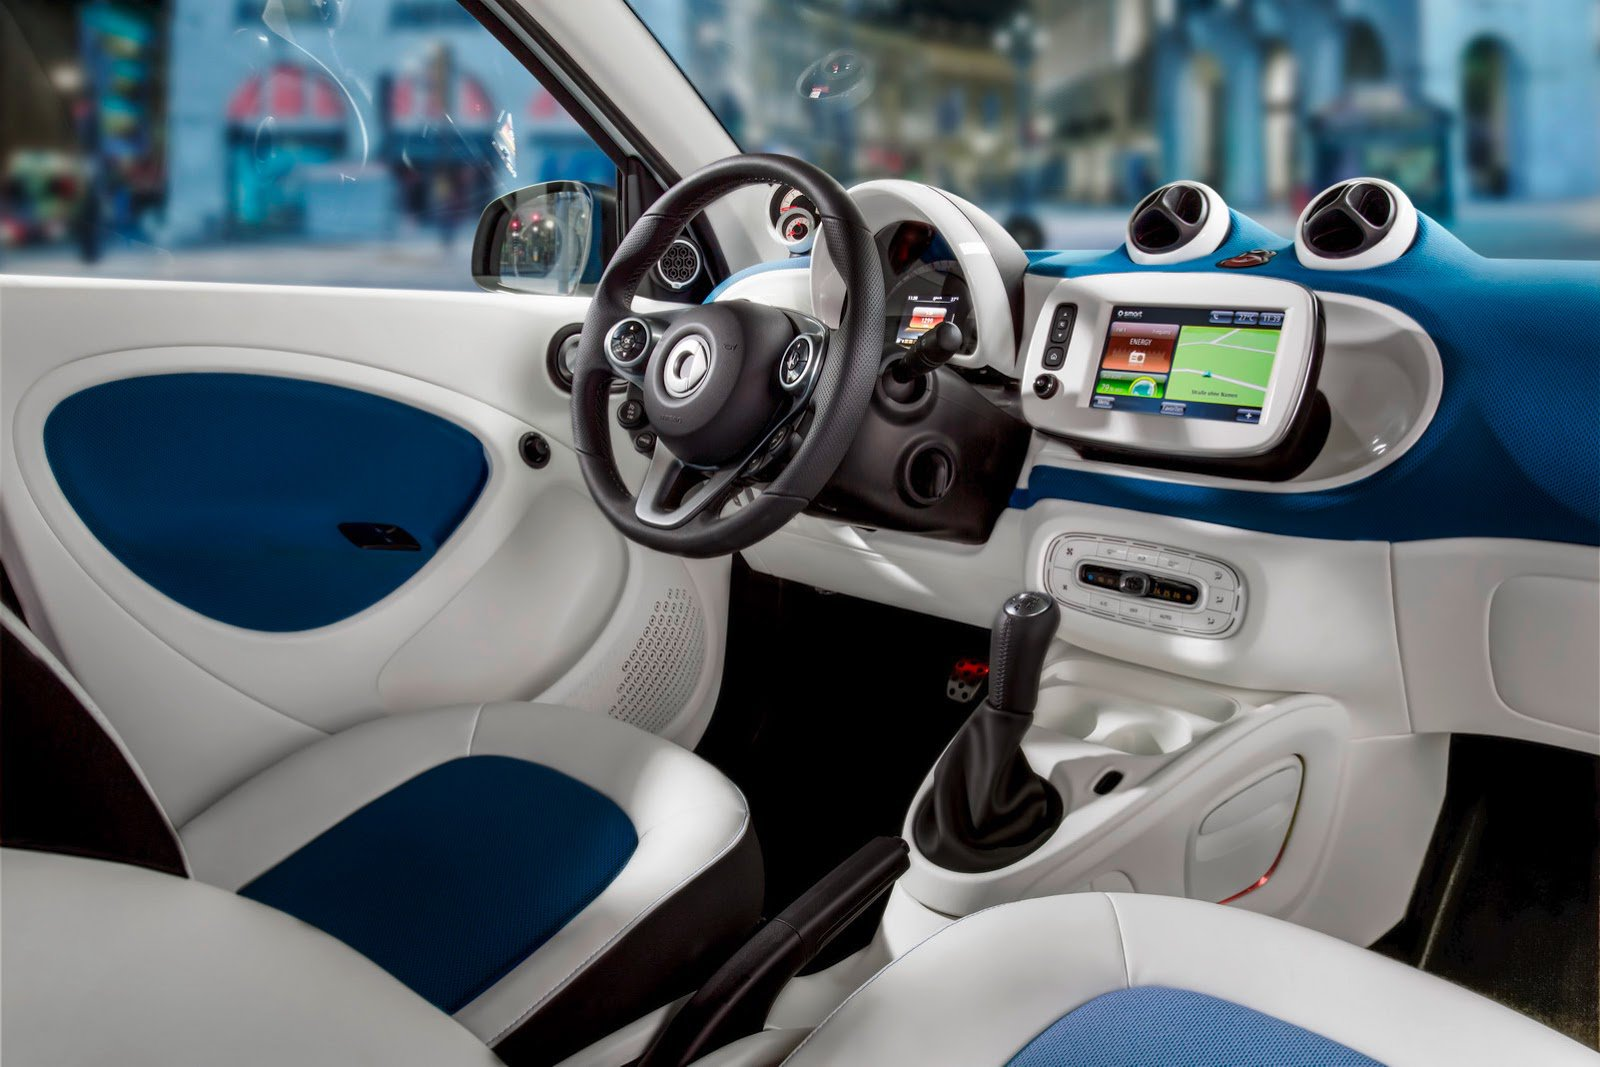 10 2 case smart car Choose your adventure with a mini electric car or an eco-friendly, urban vehicle that embodies efficiency and innovation from smart usa.